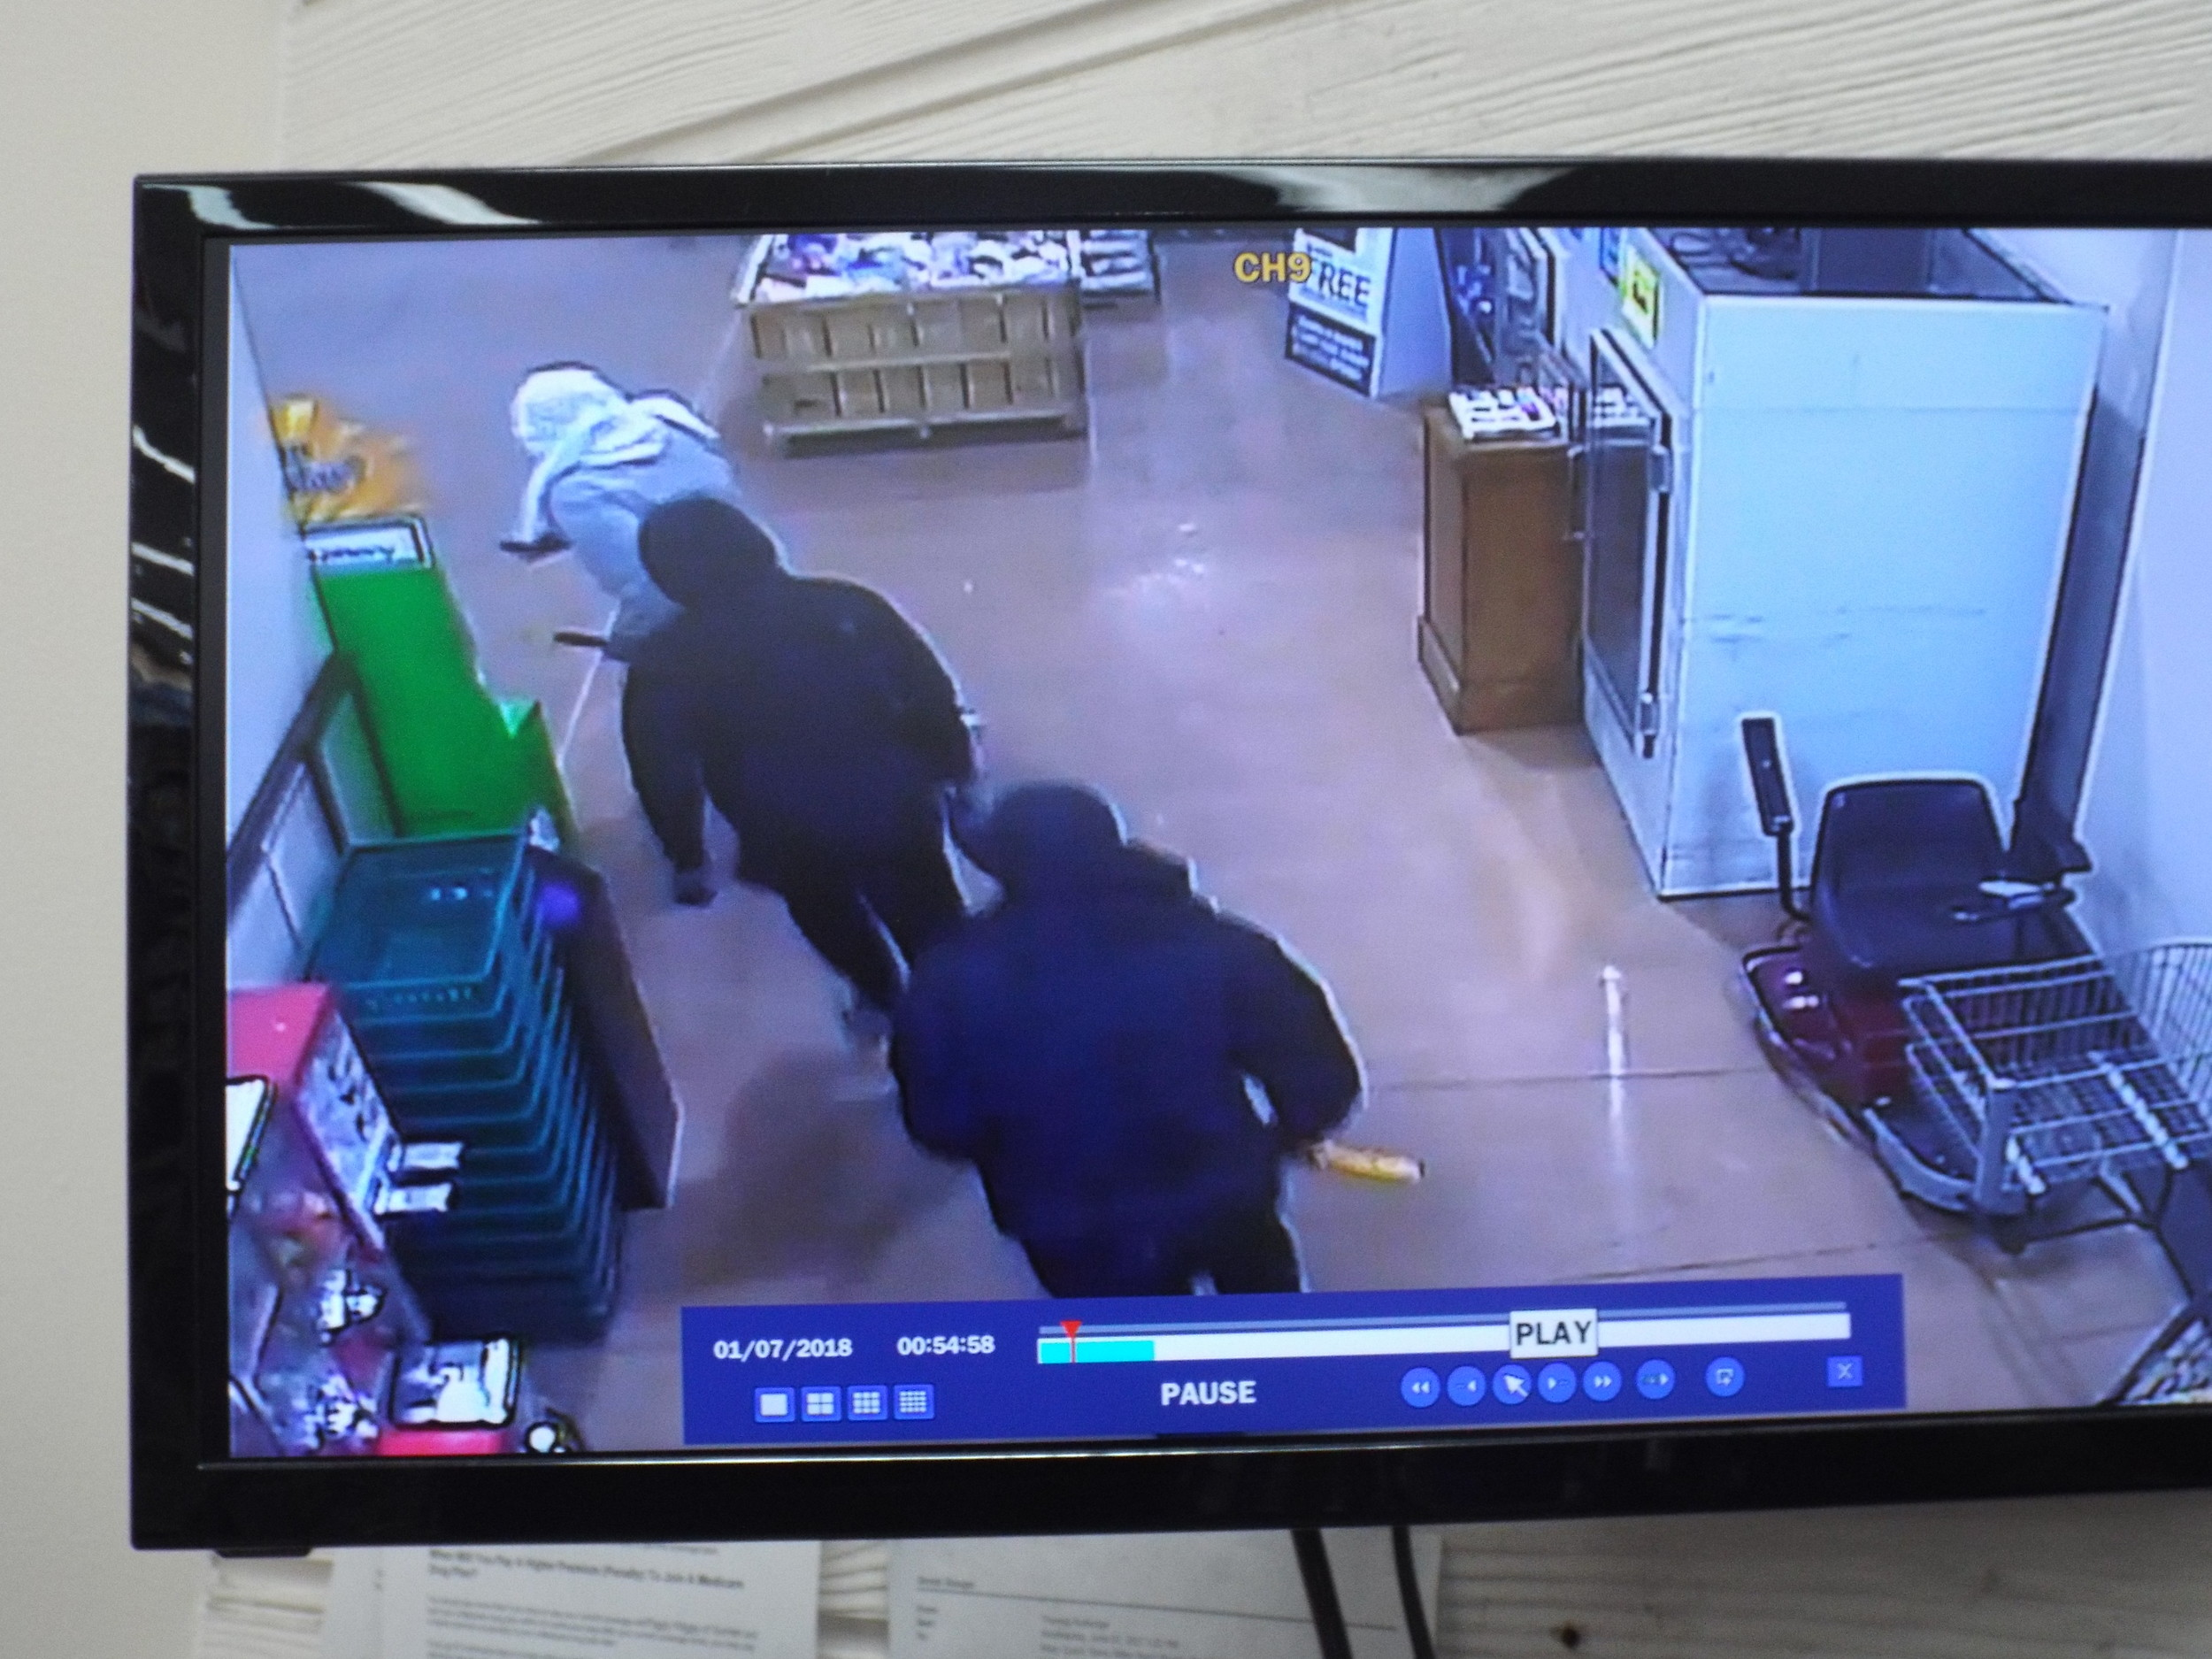 Three suspects were caught on surveillance cameras reportedly breaking into the South Sumter store.